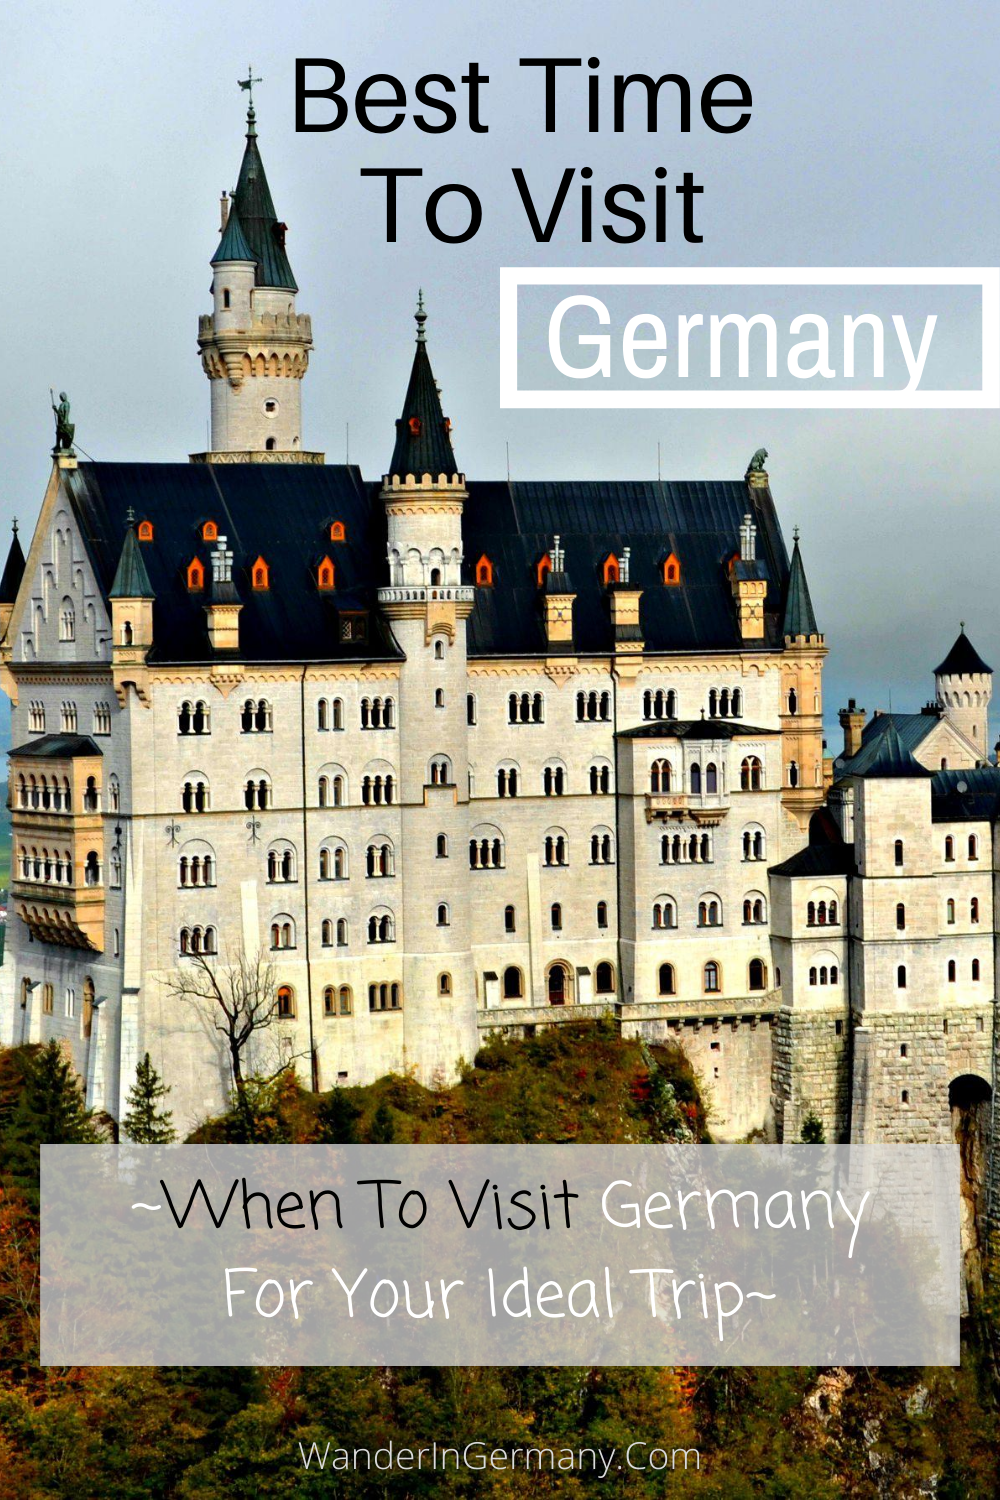 Your guide to the best time to visit Germany no matter what you want to see, including the best time to visit Berlin, Hamburg, Munich and other Germany favorite locations